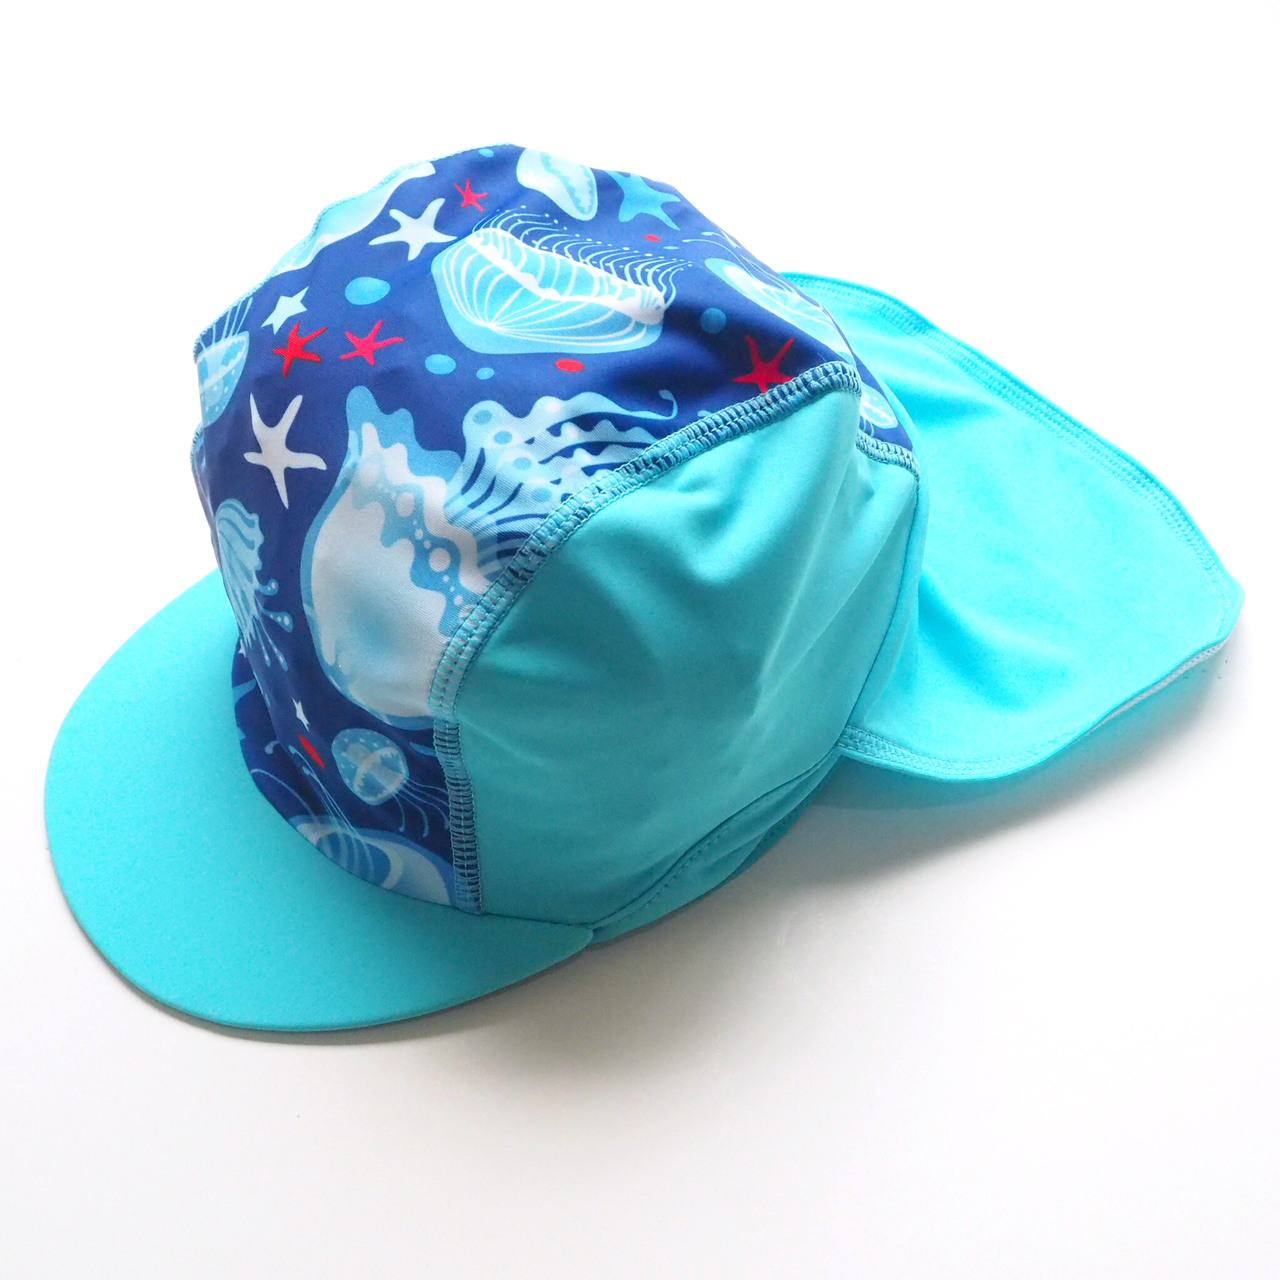 Holihi Accessories/ Sun-Shading Beach Cap (Chumphon)